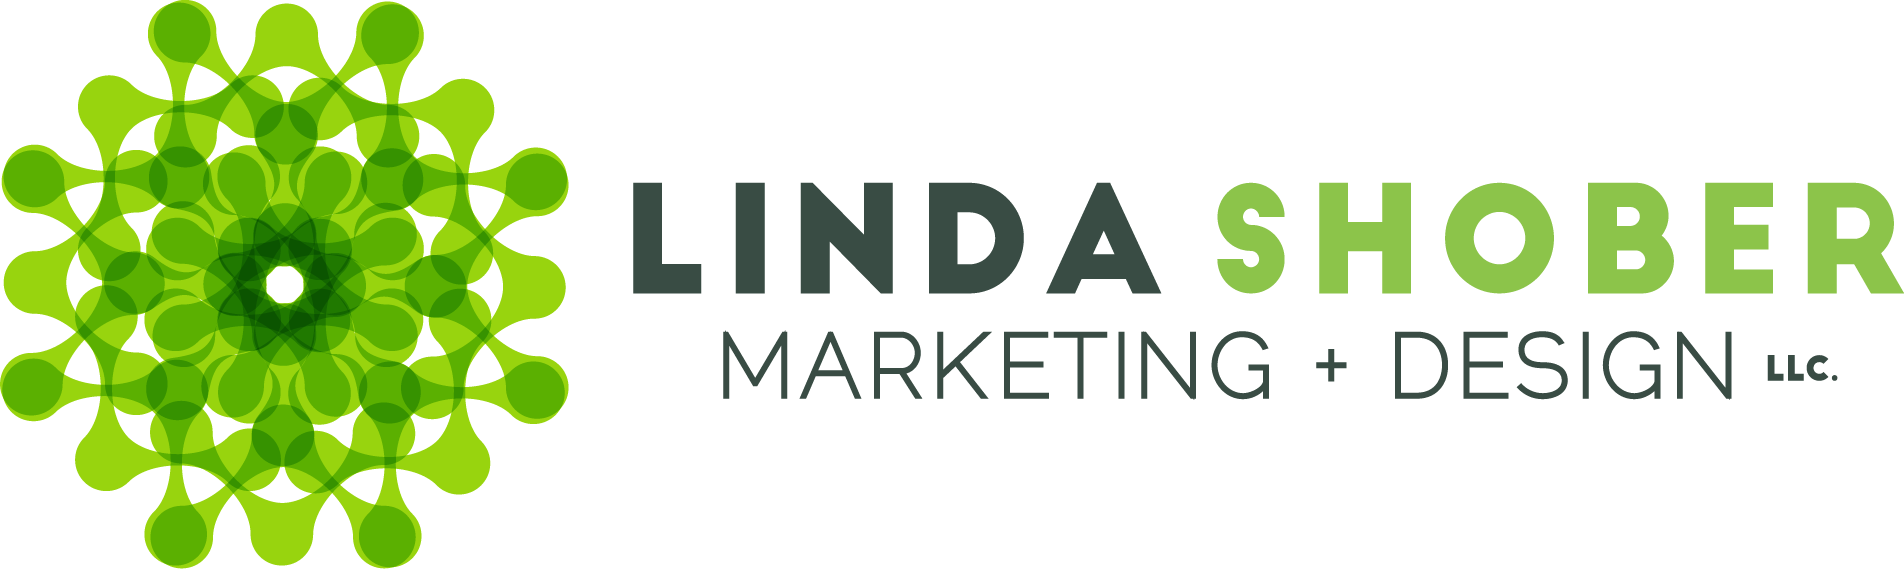 Linda Shober Marketing + Design